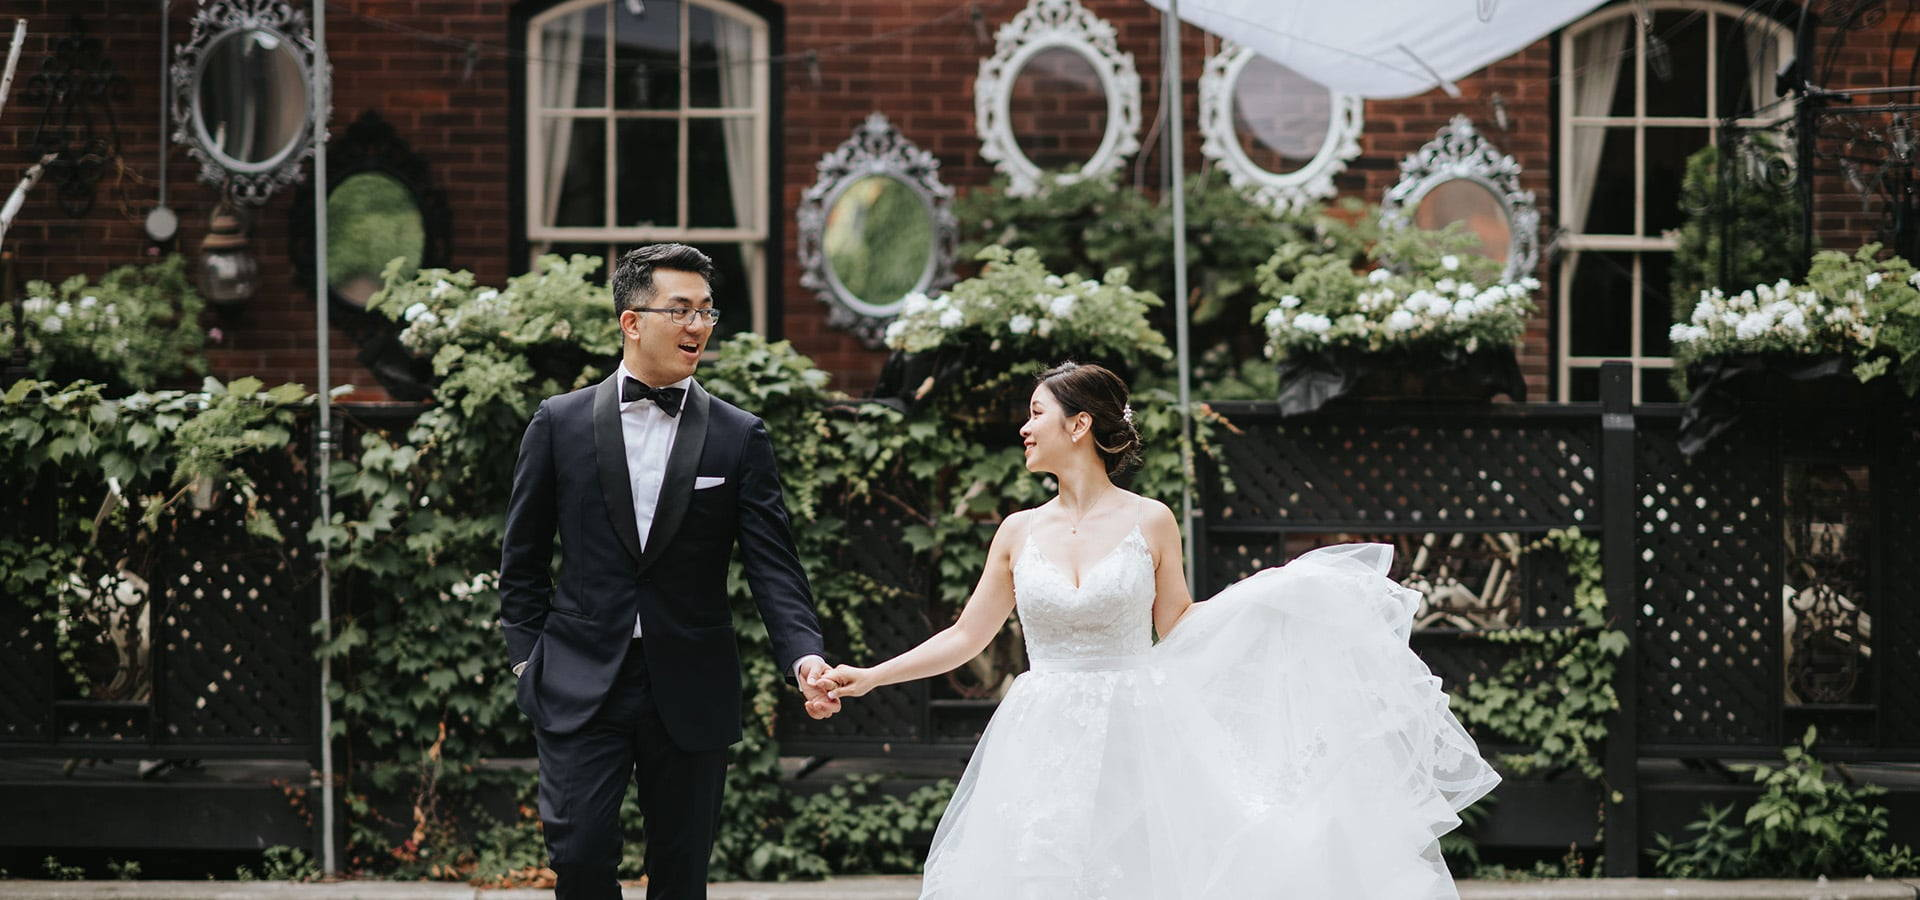 Hero image for 6 Things from Your Wedding that Make the Perfect Keepsakes